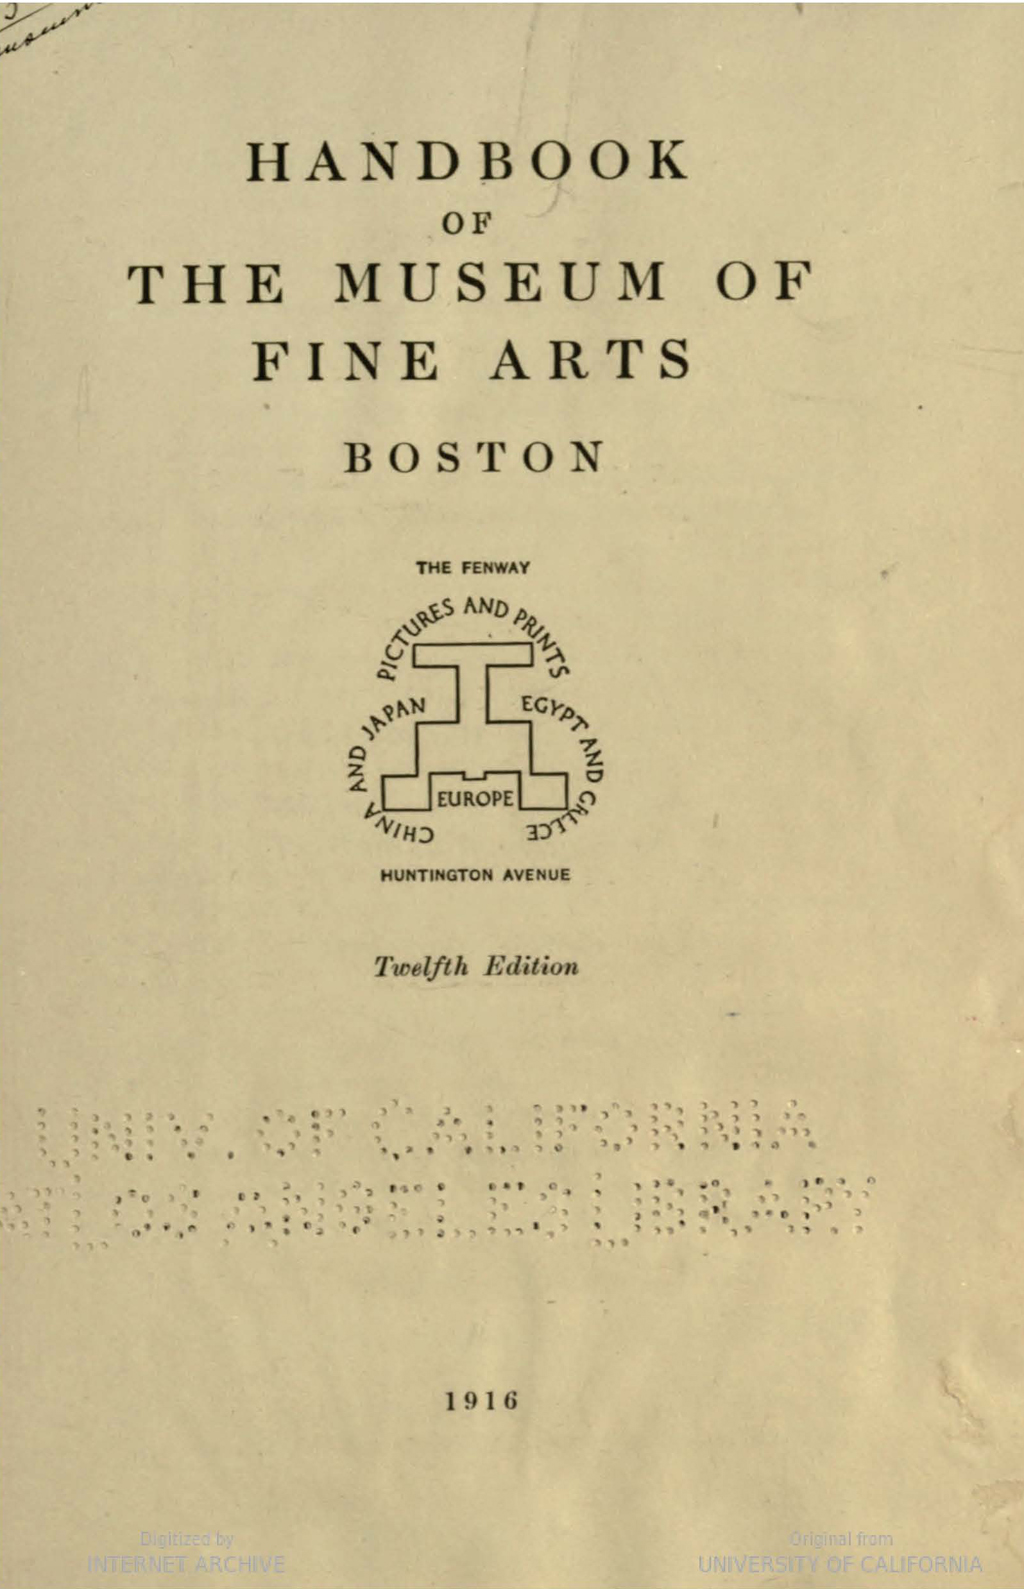 Handbook of the Museum of Fine Arts (1916). Cover with diagram by W.A. Dwiggins.